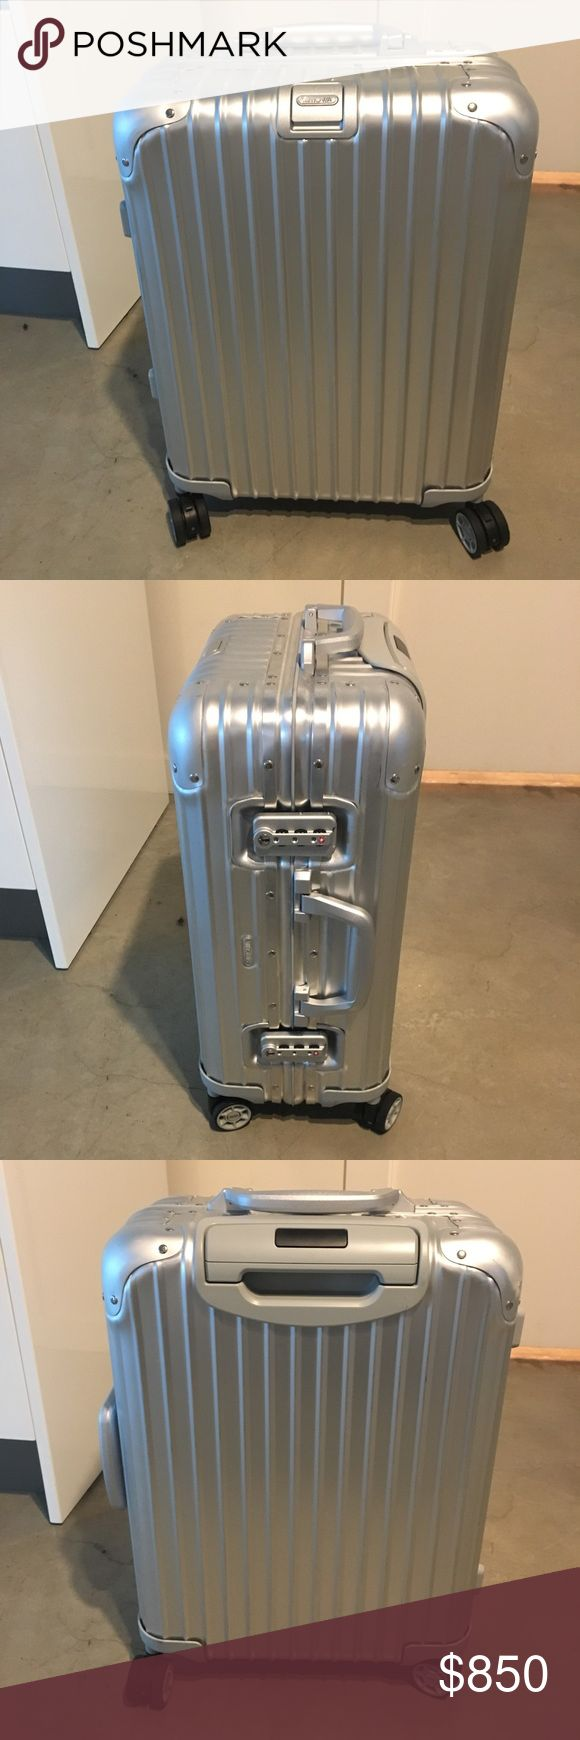 """Rimowa Topas This is a 29"""" Rimowa Topas.  It was purchased brand new in May of 2017 and used 3 times.  It's in mint condition and I still have all the original paper work including a 5 year warranty.  It's been a fantastic piece of luggage! Rimowa Bags Travel Bags"""